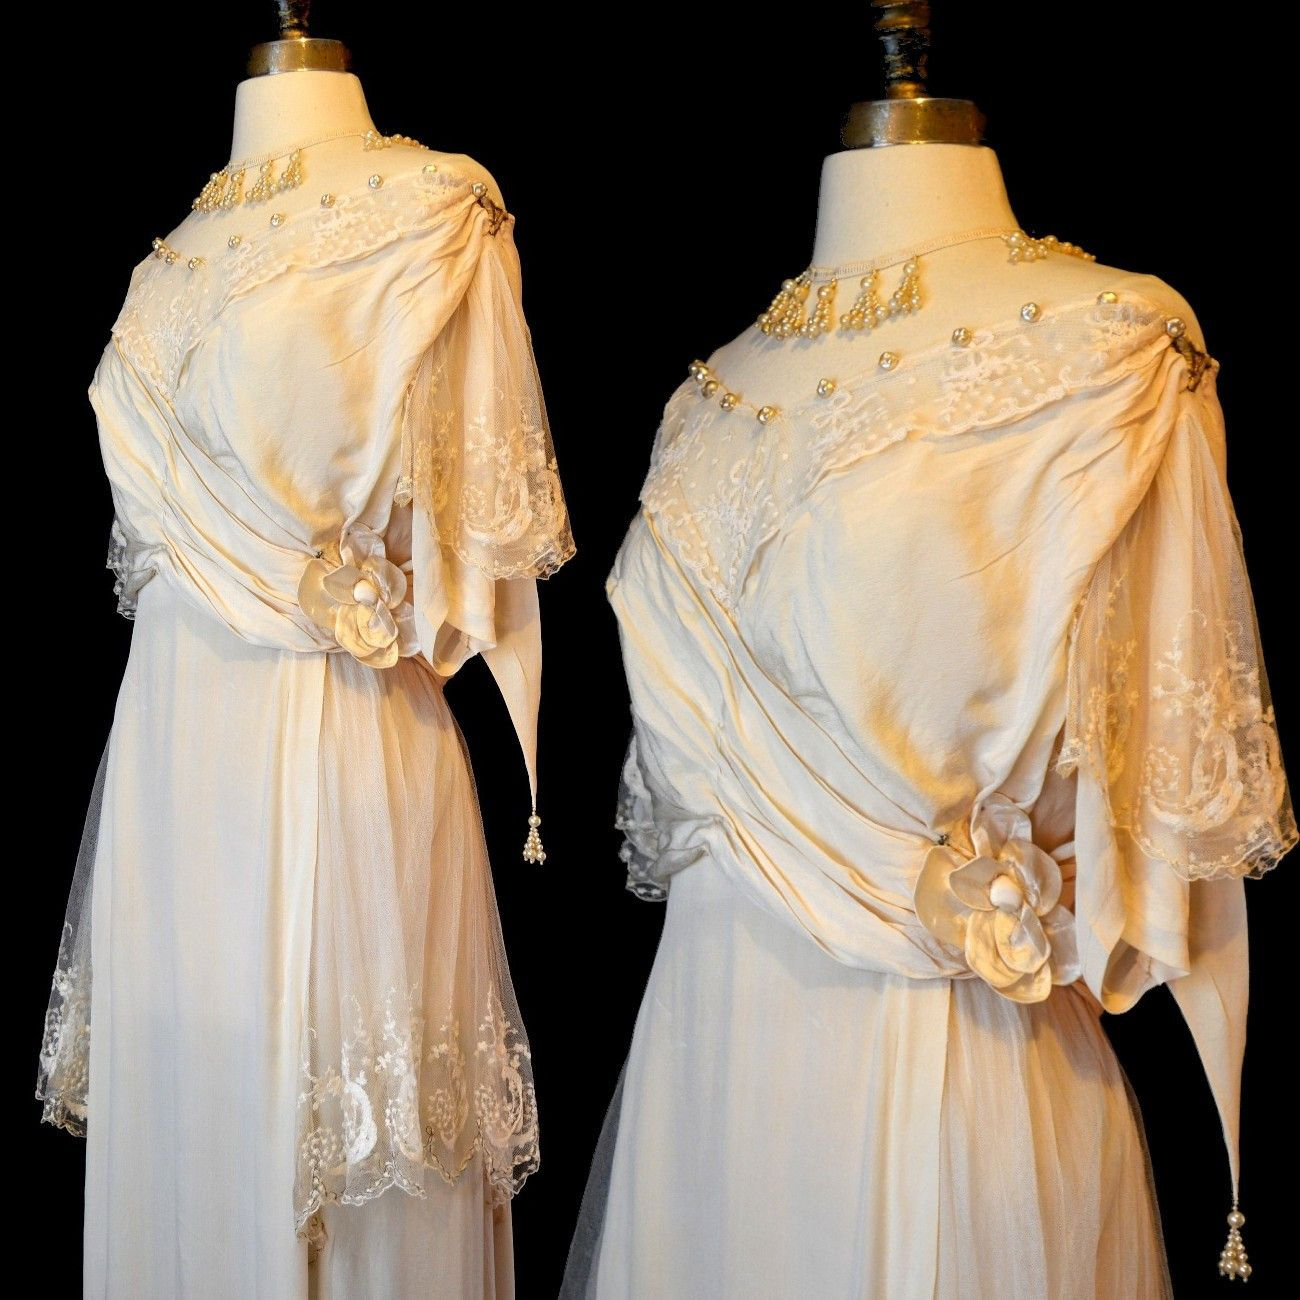 Ivory silk and lace wedding dress  Antique Edwardian Ivory Silk Wedding Dress M Embroidered Tulle Lace